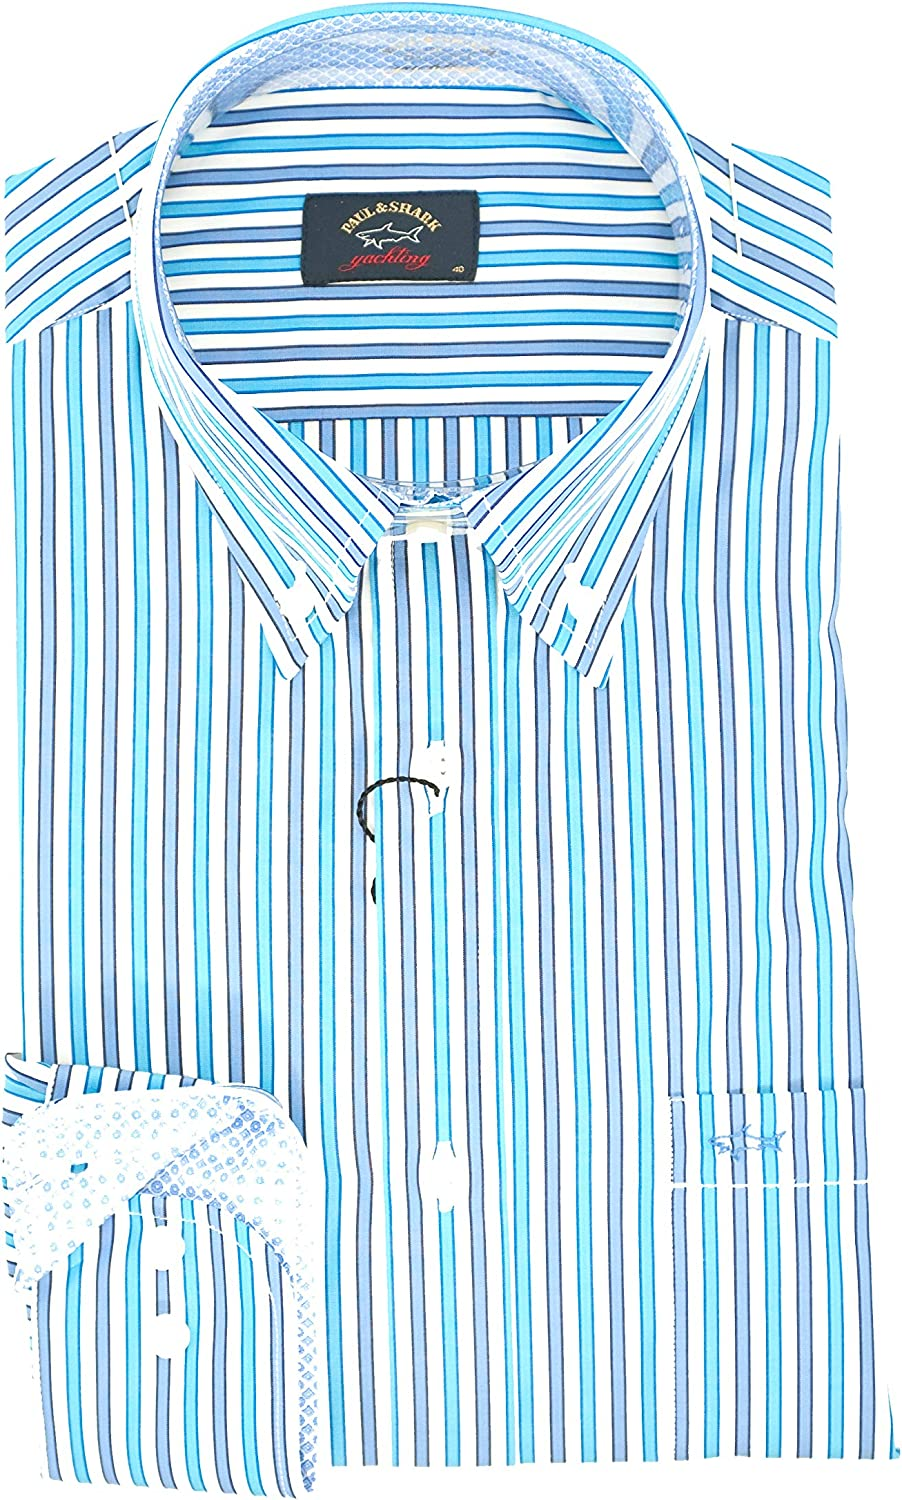 Paul & Shark Camisa, Regular, Casual: Amazon.es: Ropa y accesorios